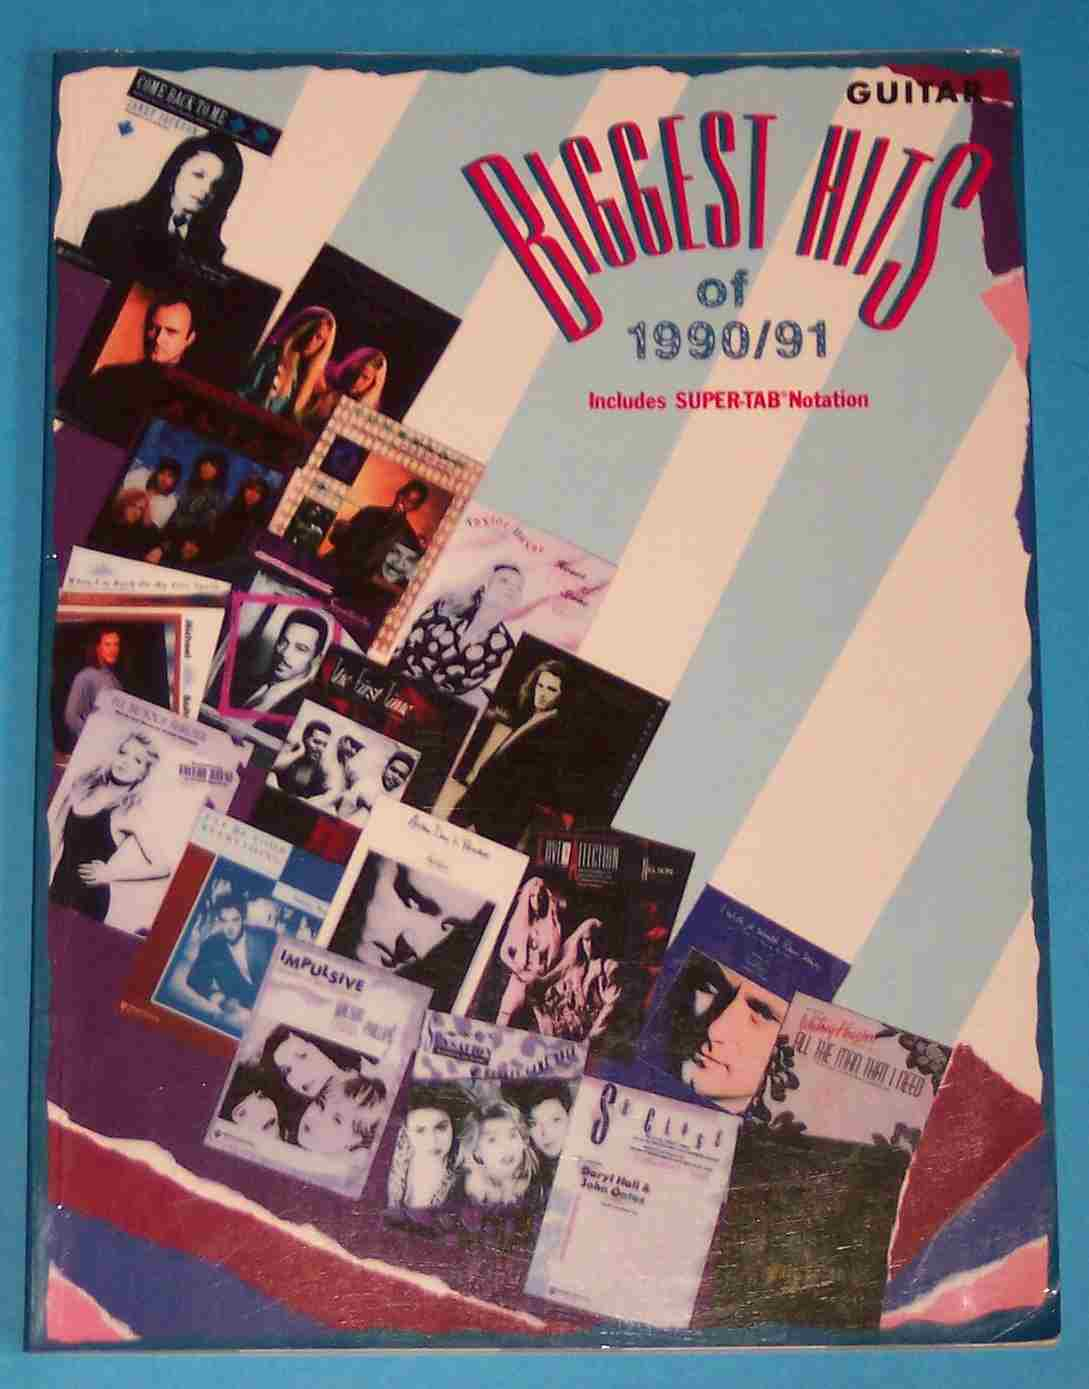 Image for Guitar Biggest Hits of 1990/91